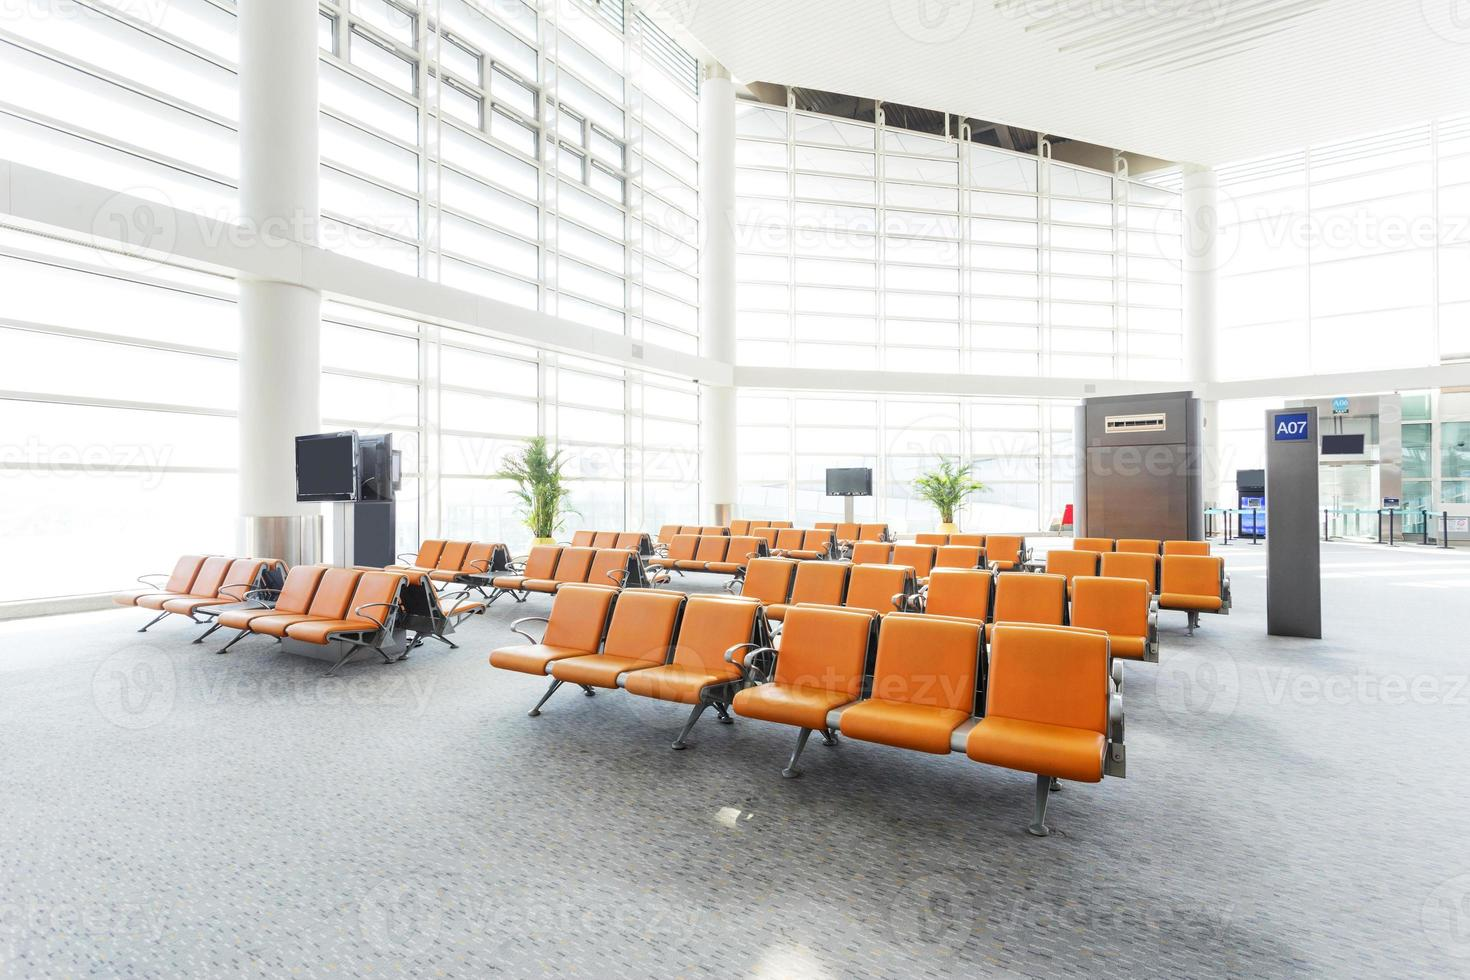 moderne luchthaven wachthal interieur foto